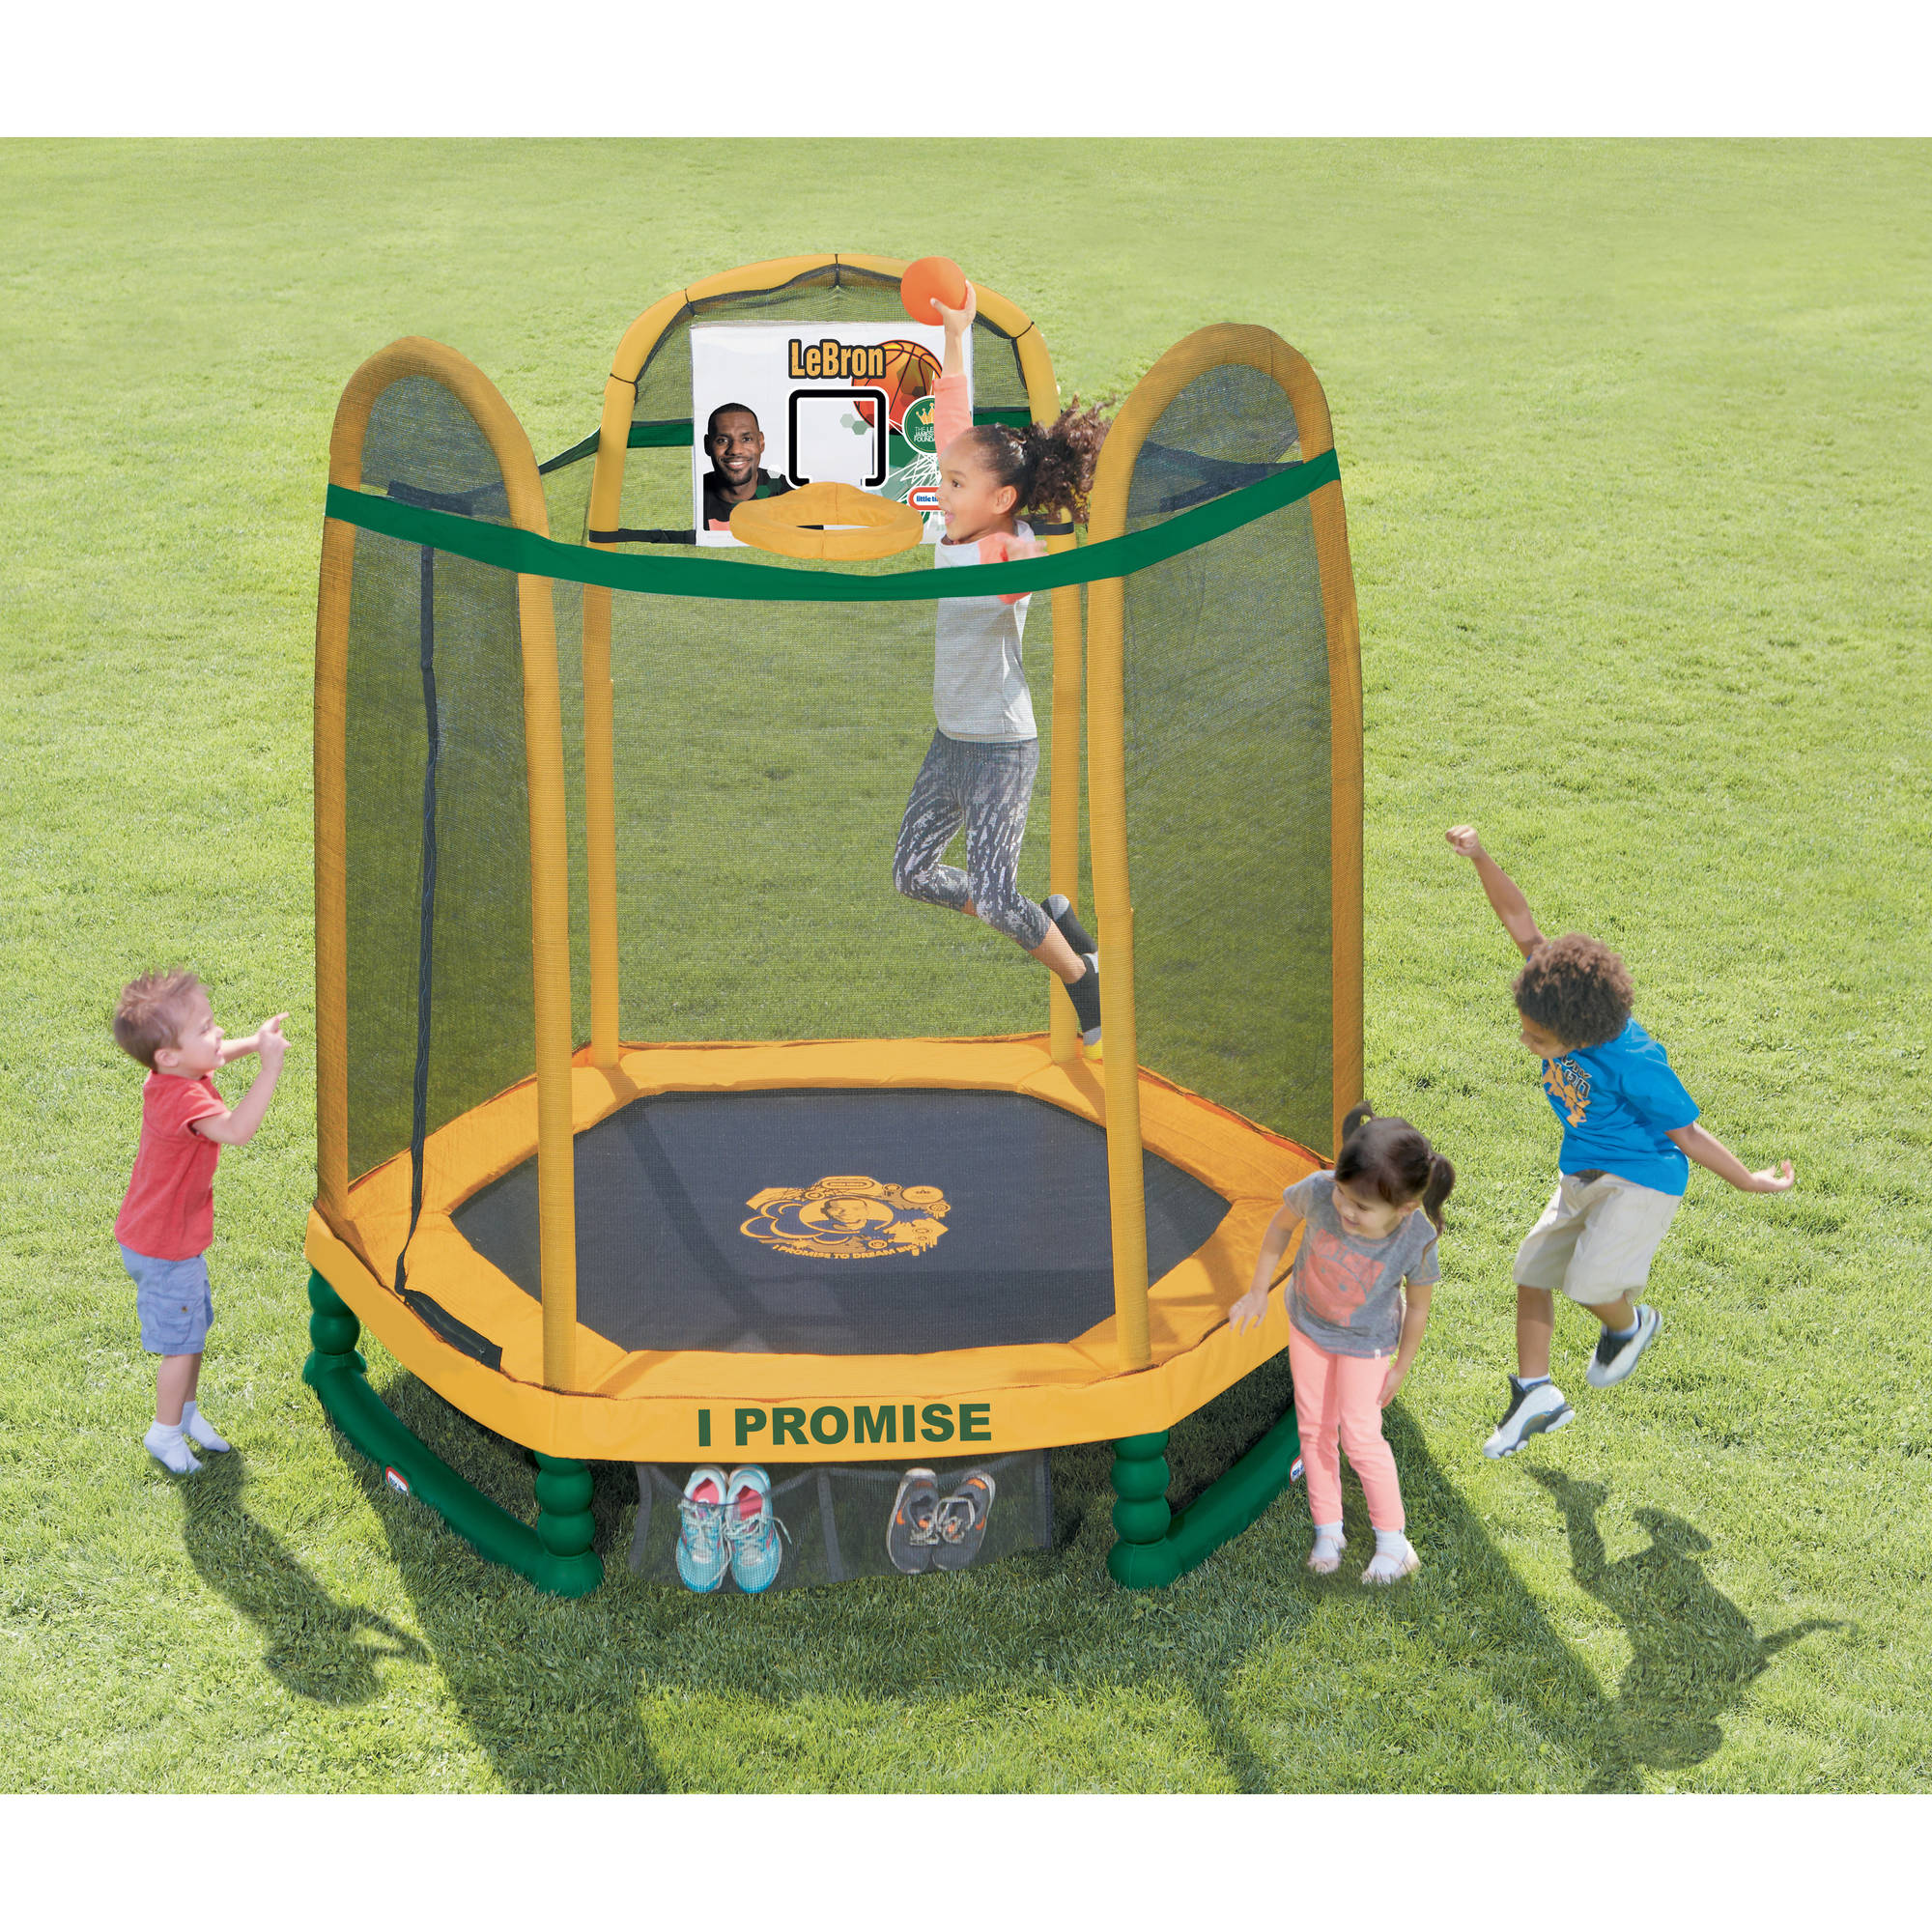 Little Tikes 7-Foot LeBron James Family Foundation Dream Big Trampoline, with Safety Enclosure and Padded Frame, Yellow